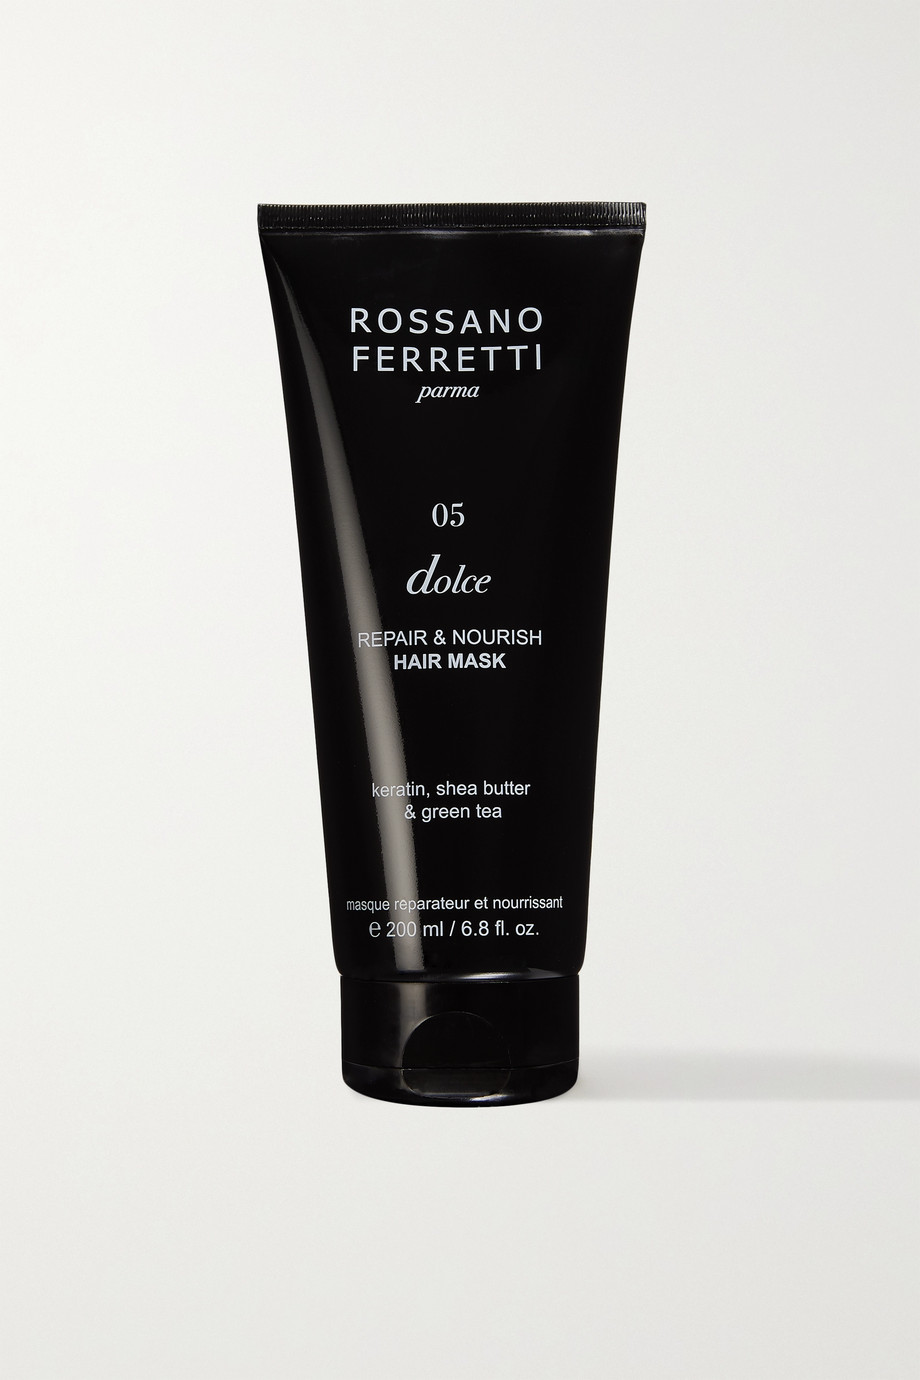 ROSSANO FERRETTI PARMA Dolce Repair & Nourish Hair Mask, 200ml